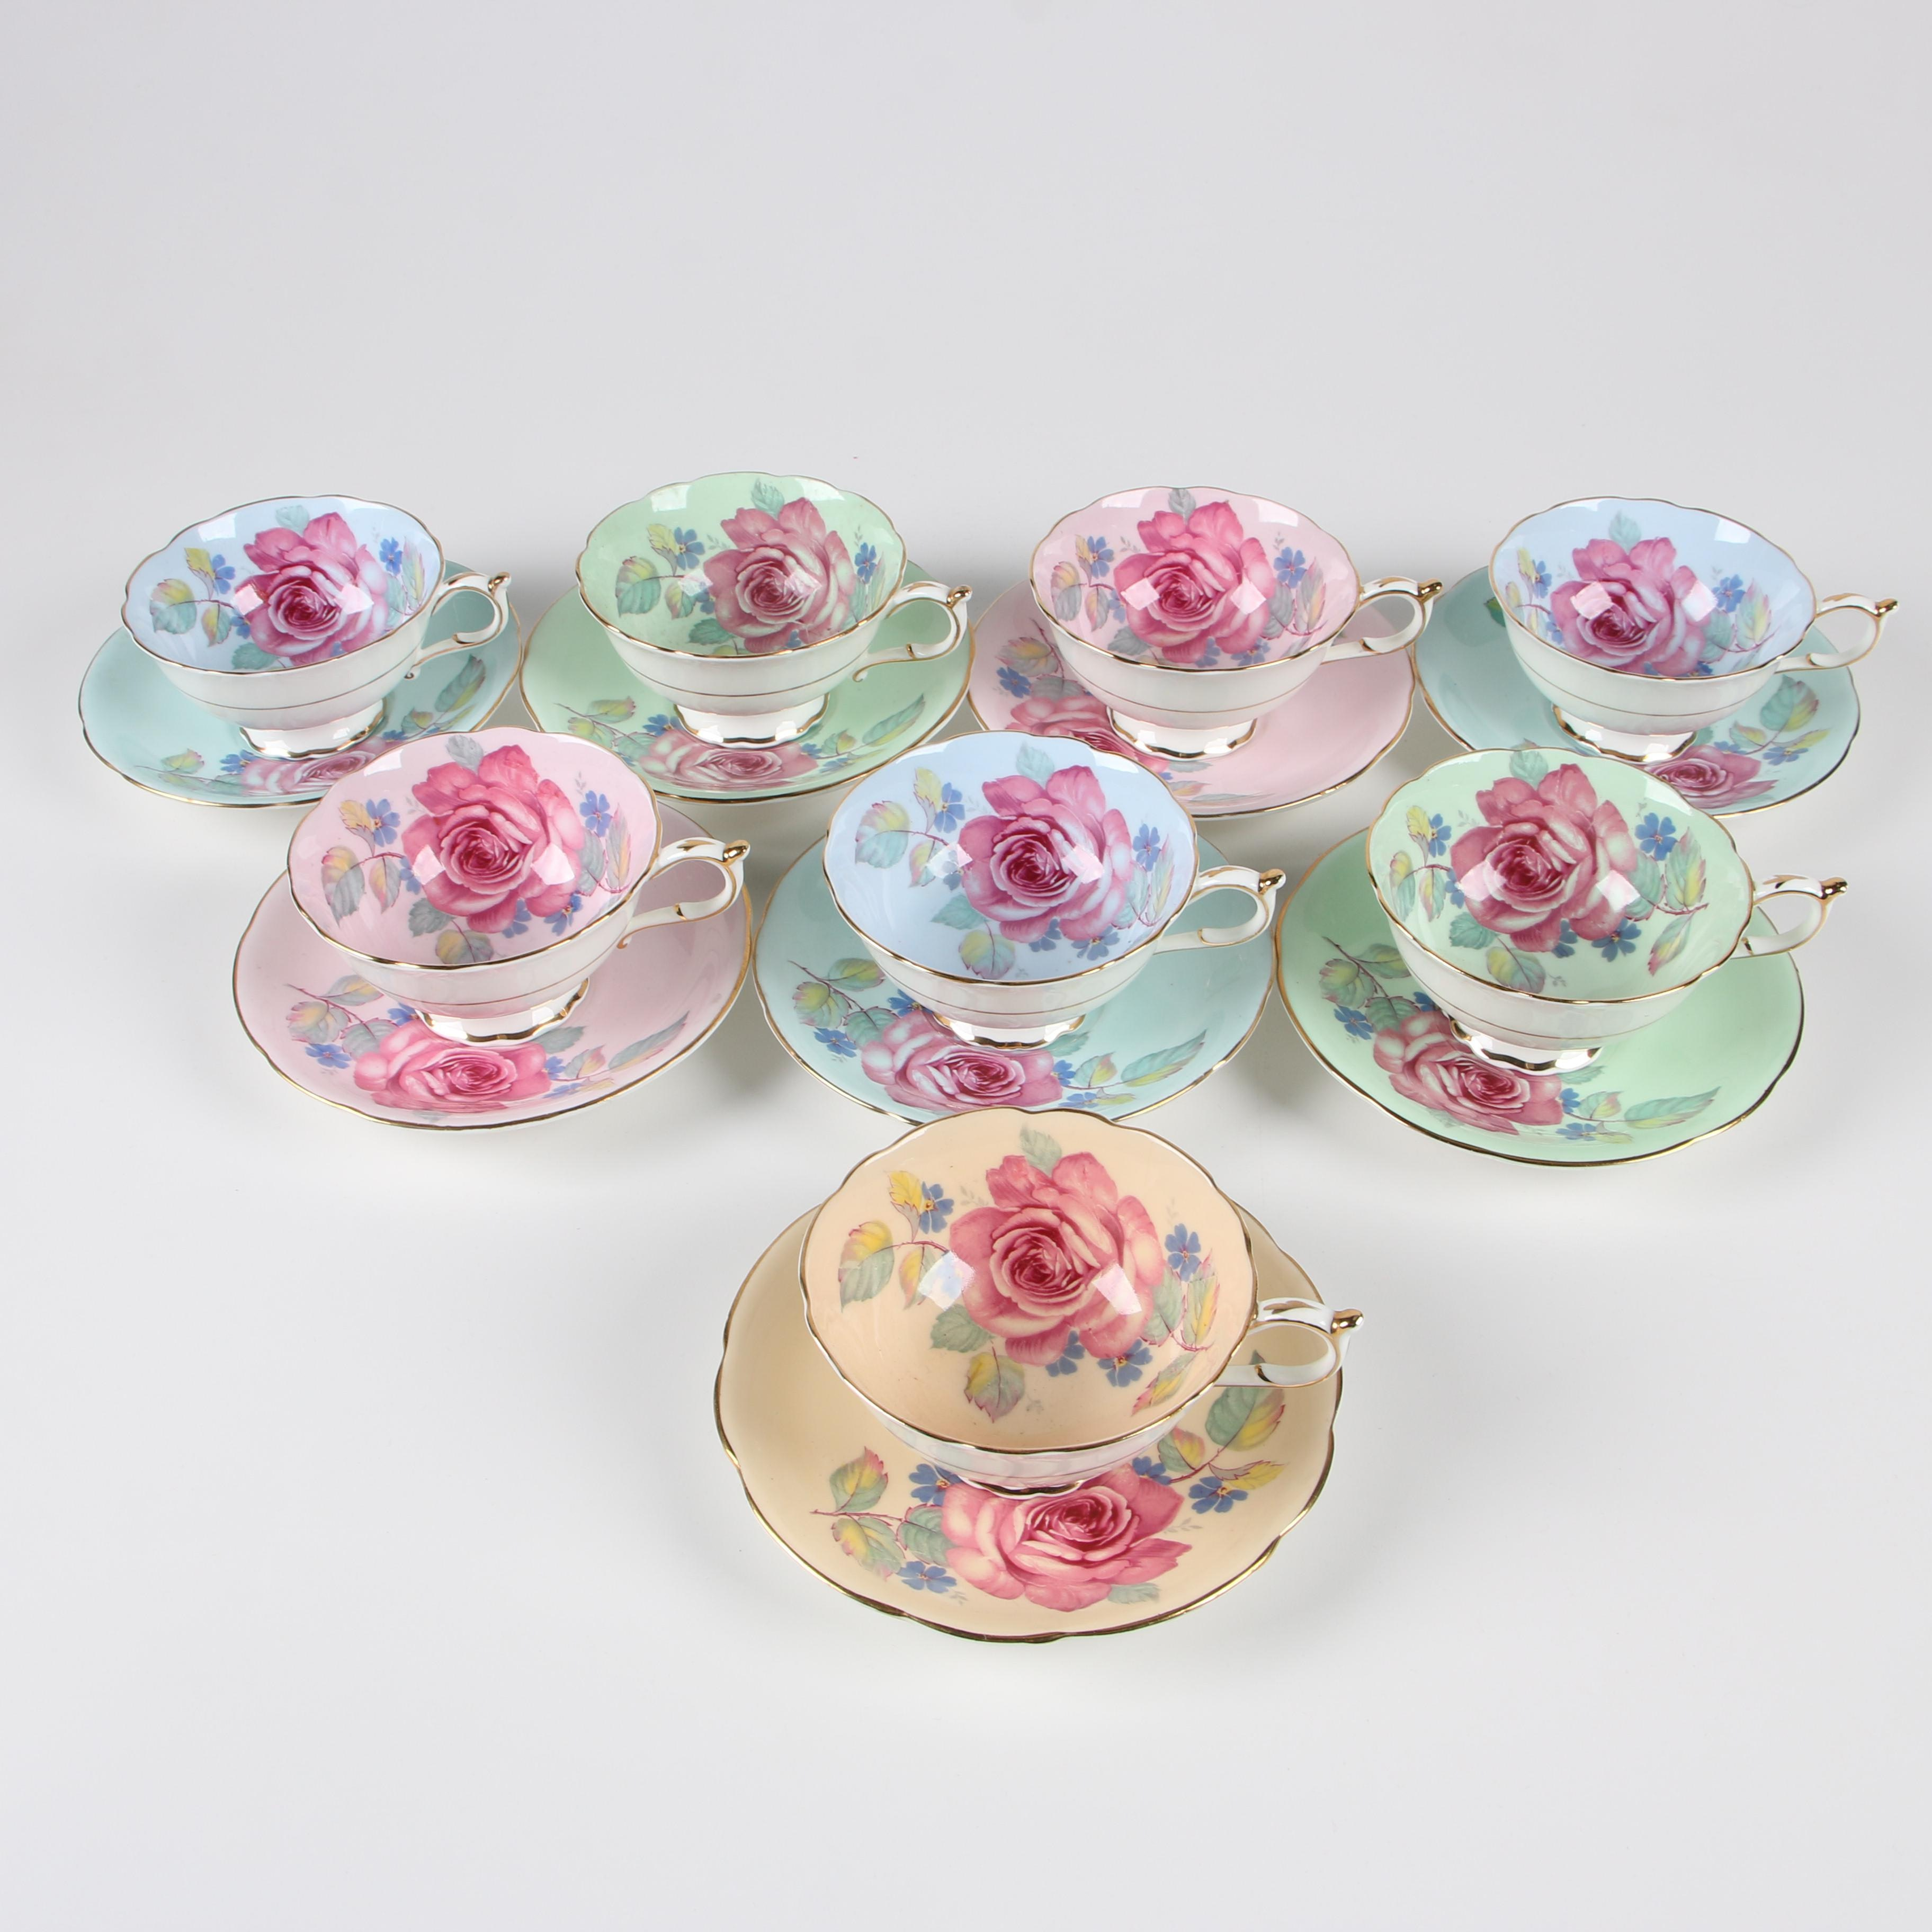 Paragon Floral Pattern Bone China Teacups and Saucers